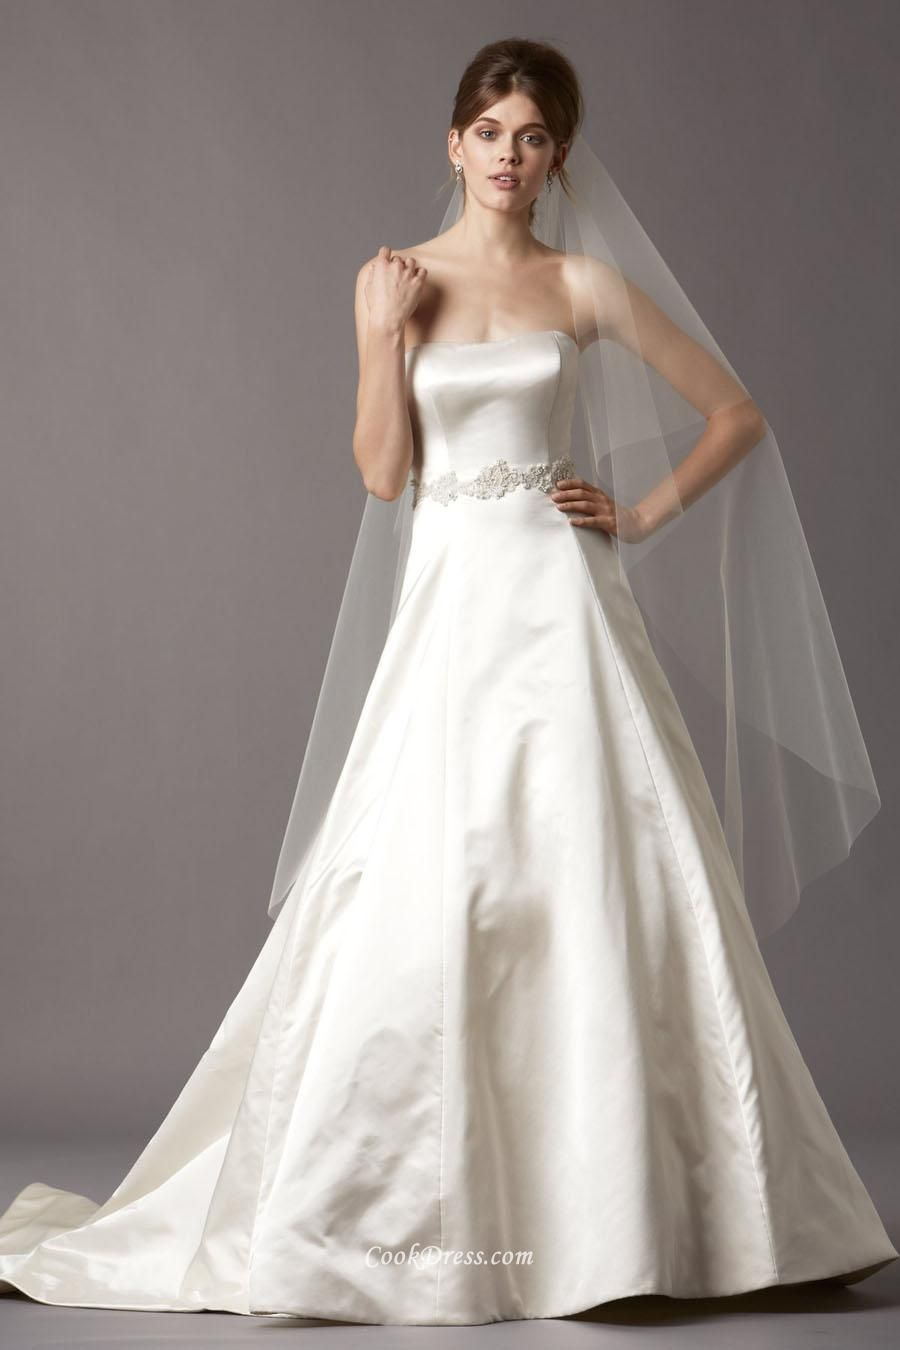 Simple strapless a line long satin wedding dress with lace belt simple strapless a line long satin wedding dress with lace belt ombrellifo Choice Image